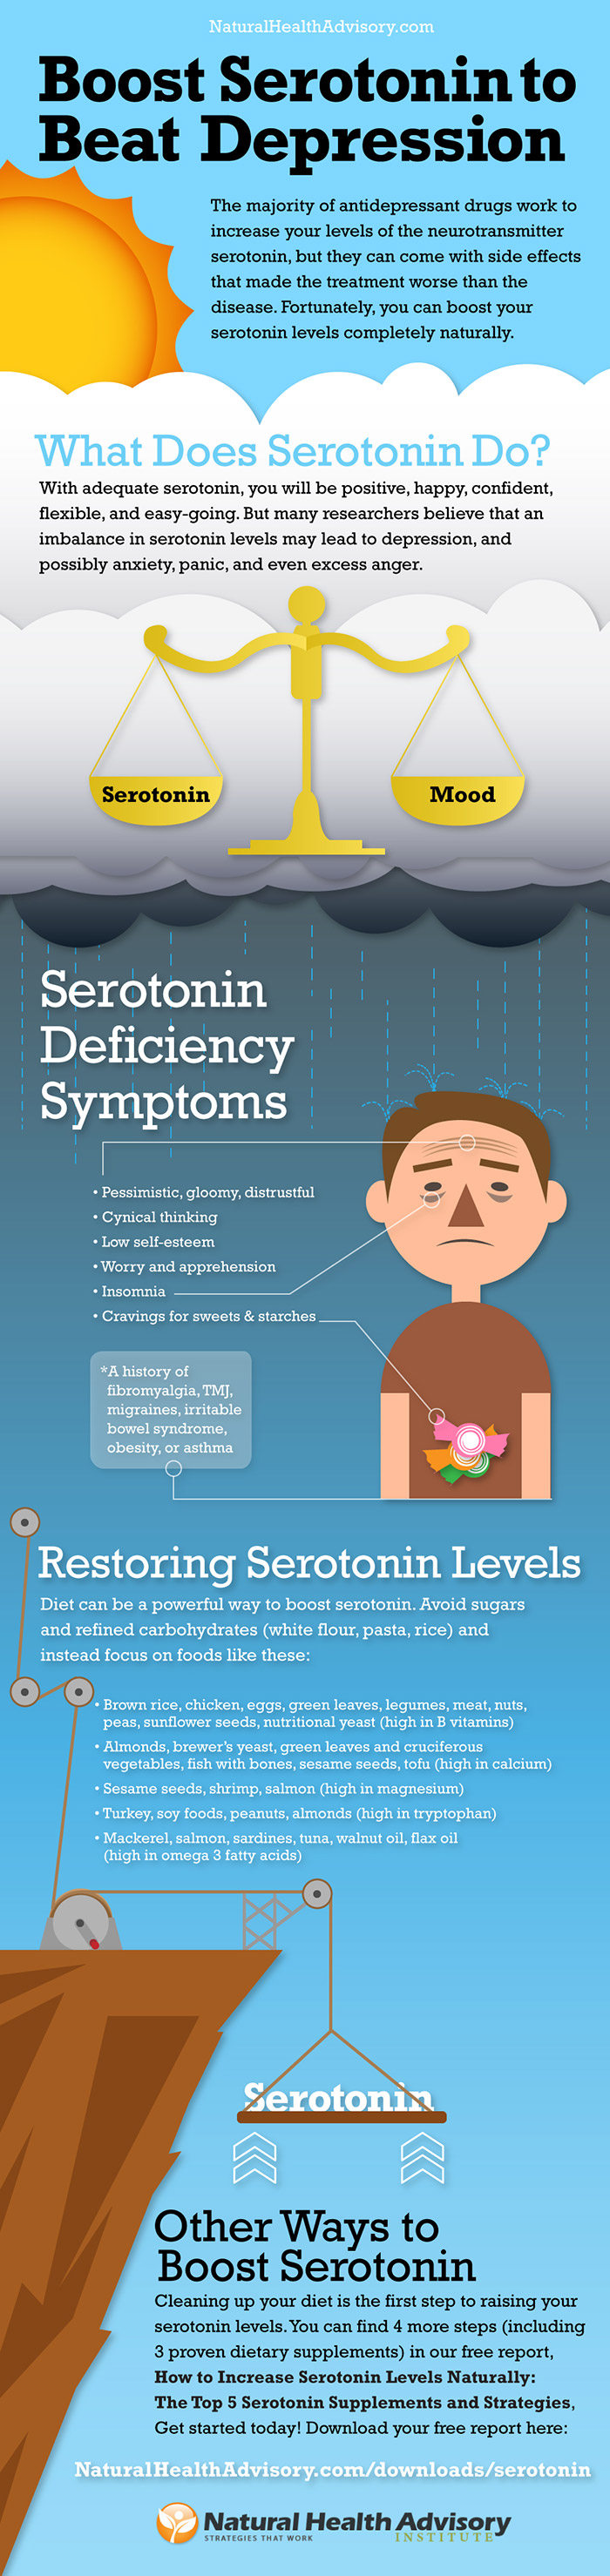 How to Boost Serotonin to Beat Depression